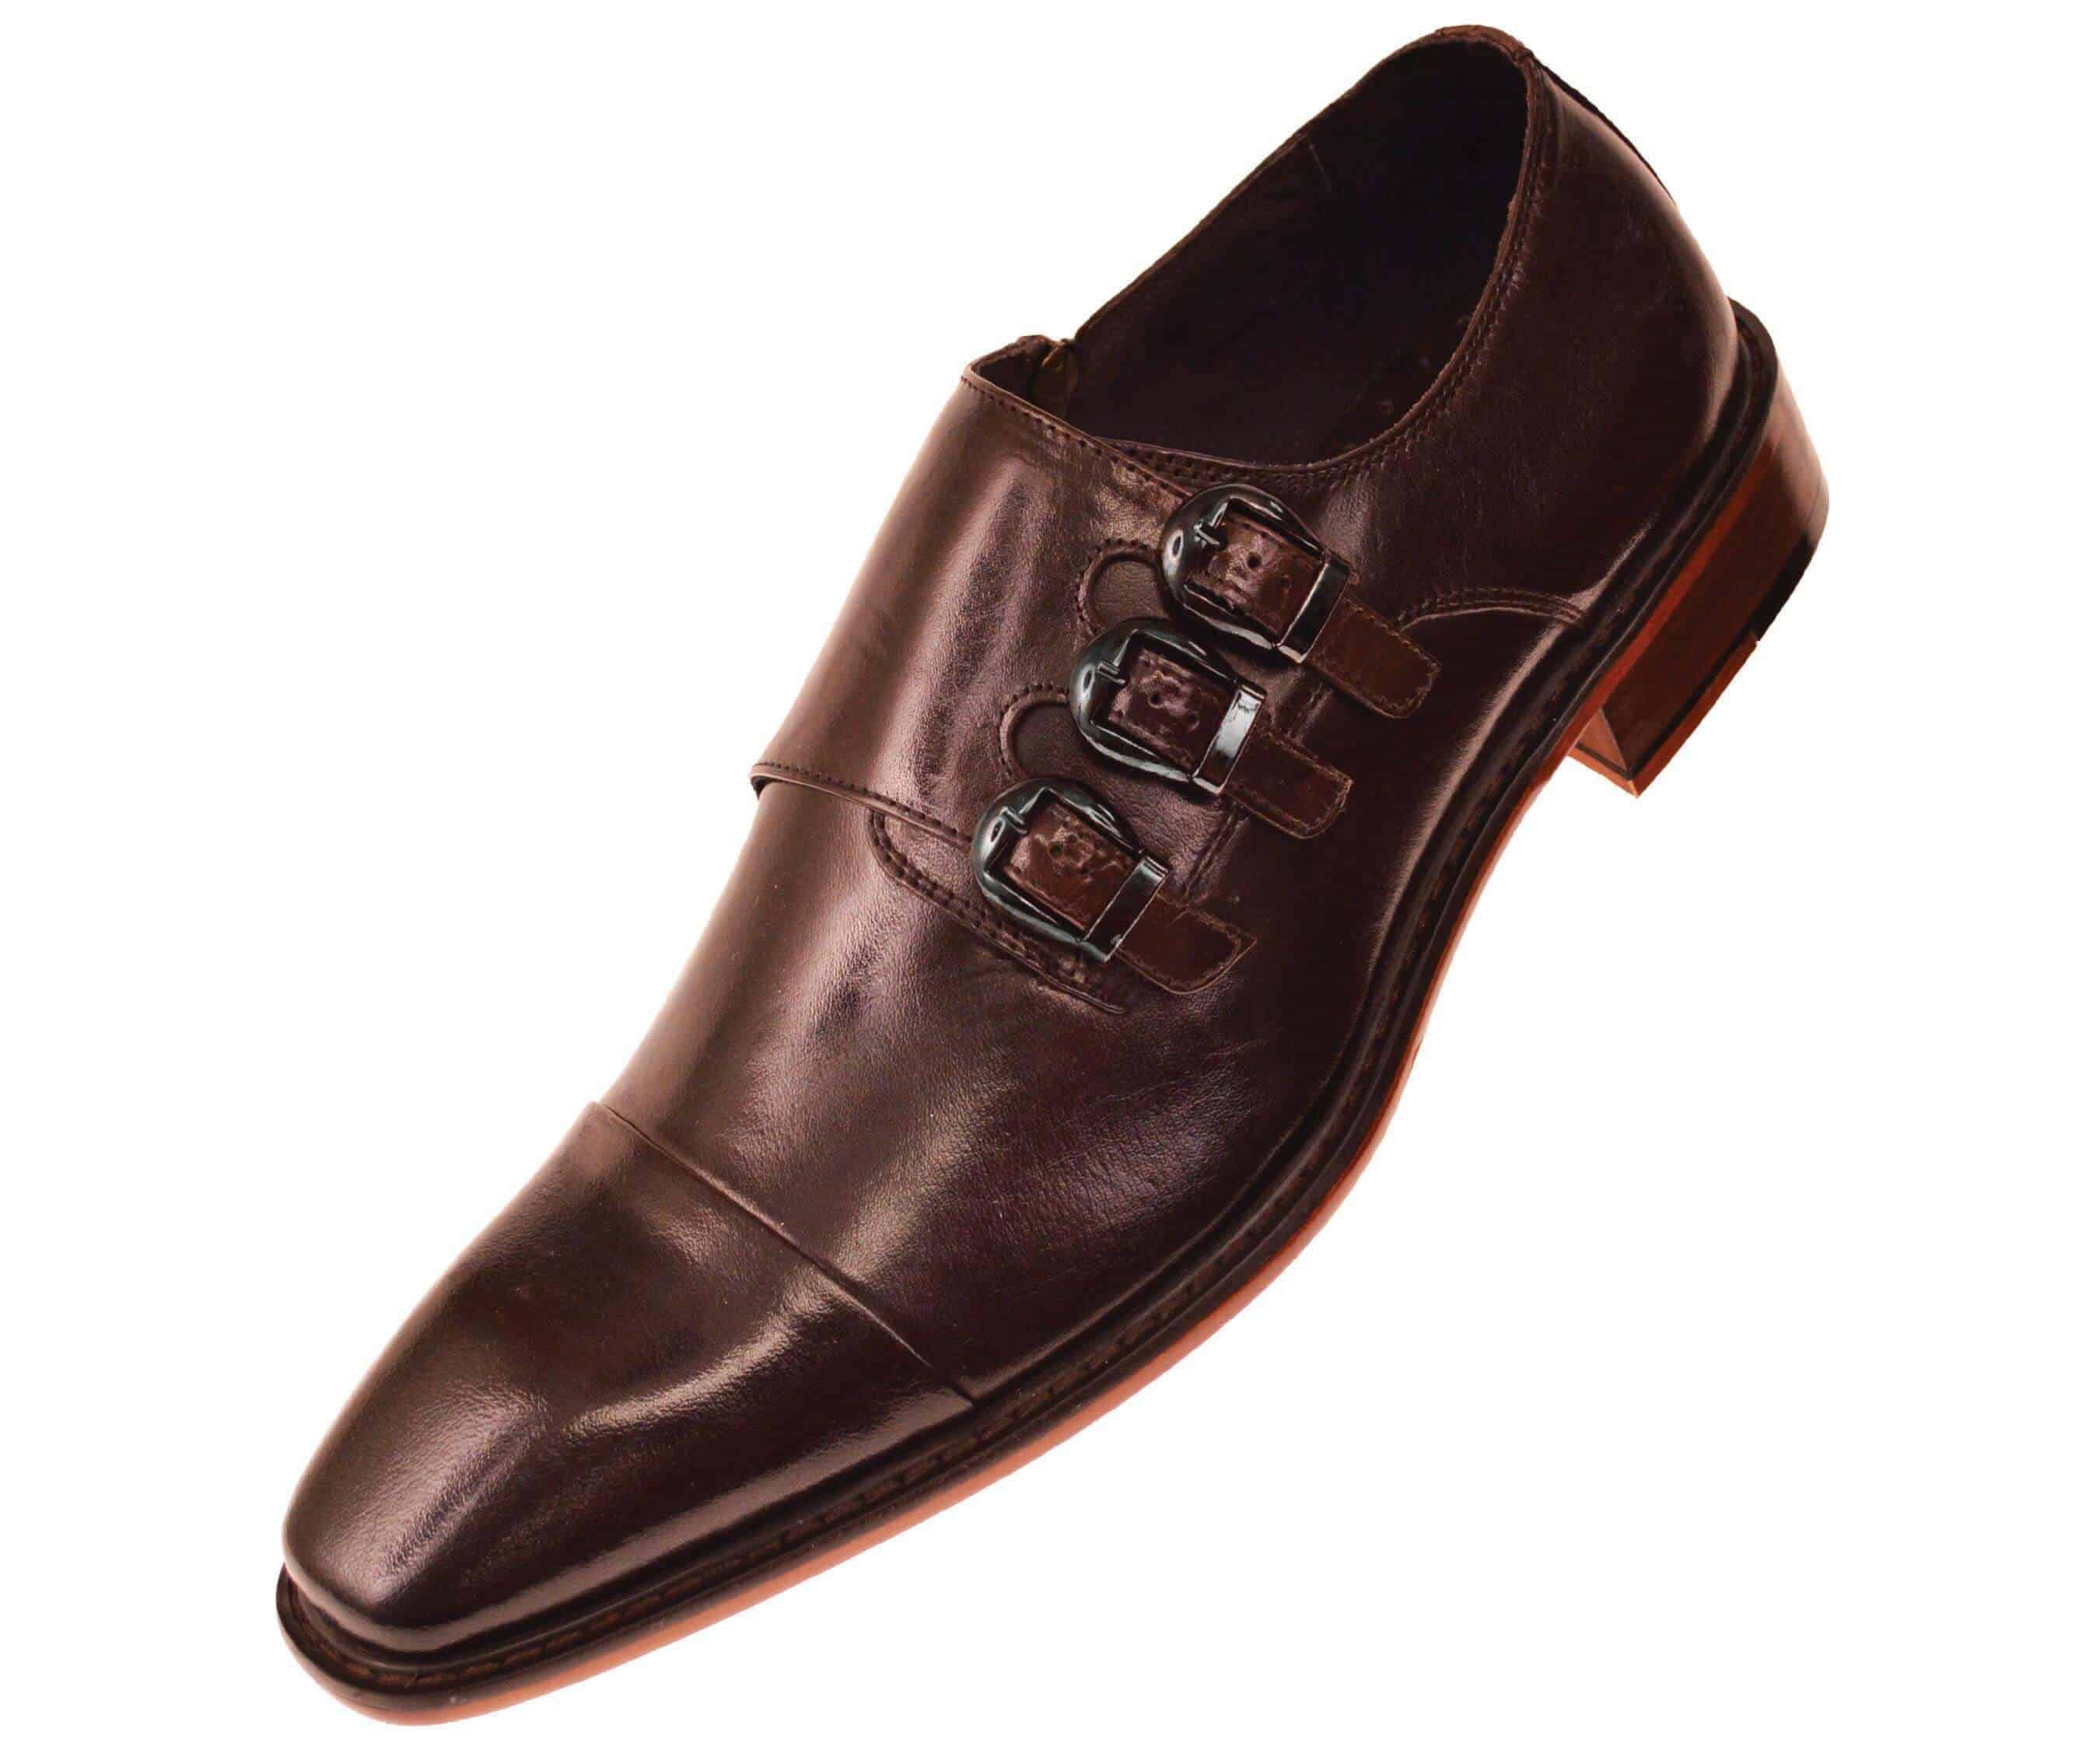 Monk Strap Oxfords. These Monk Strap Oxford Shoes really pack a punch, with the brogue detailing and a hand-burnished wingtip. For fellas that are stuck in a style rut when picking shoes, this keeps the beloved hole details and classic shape.